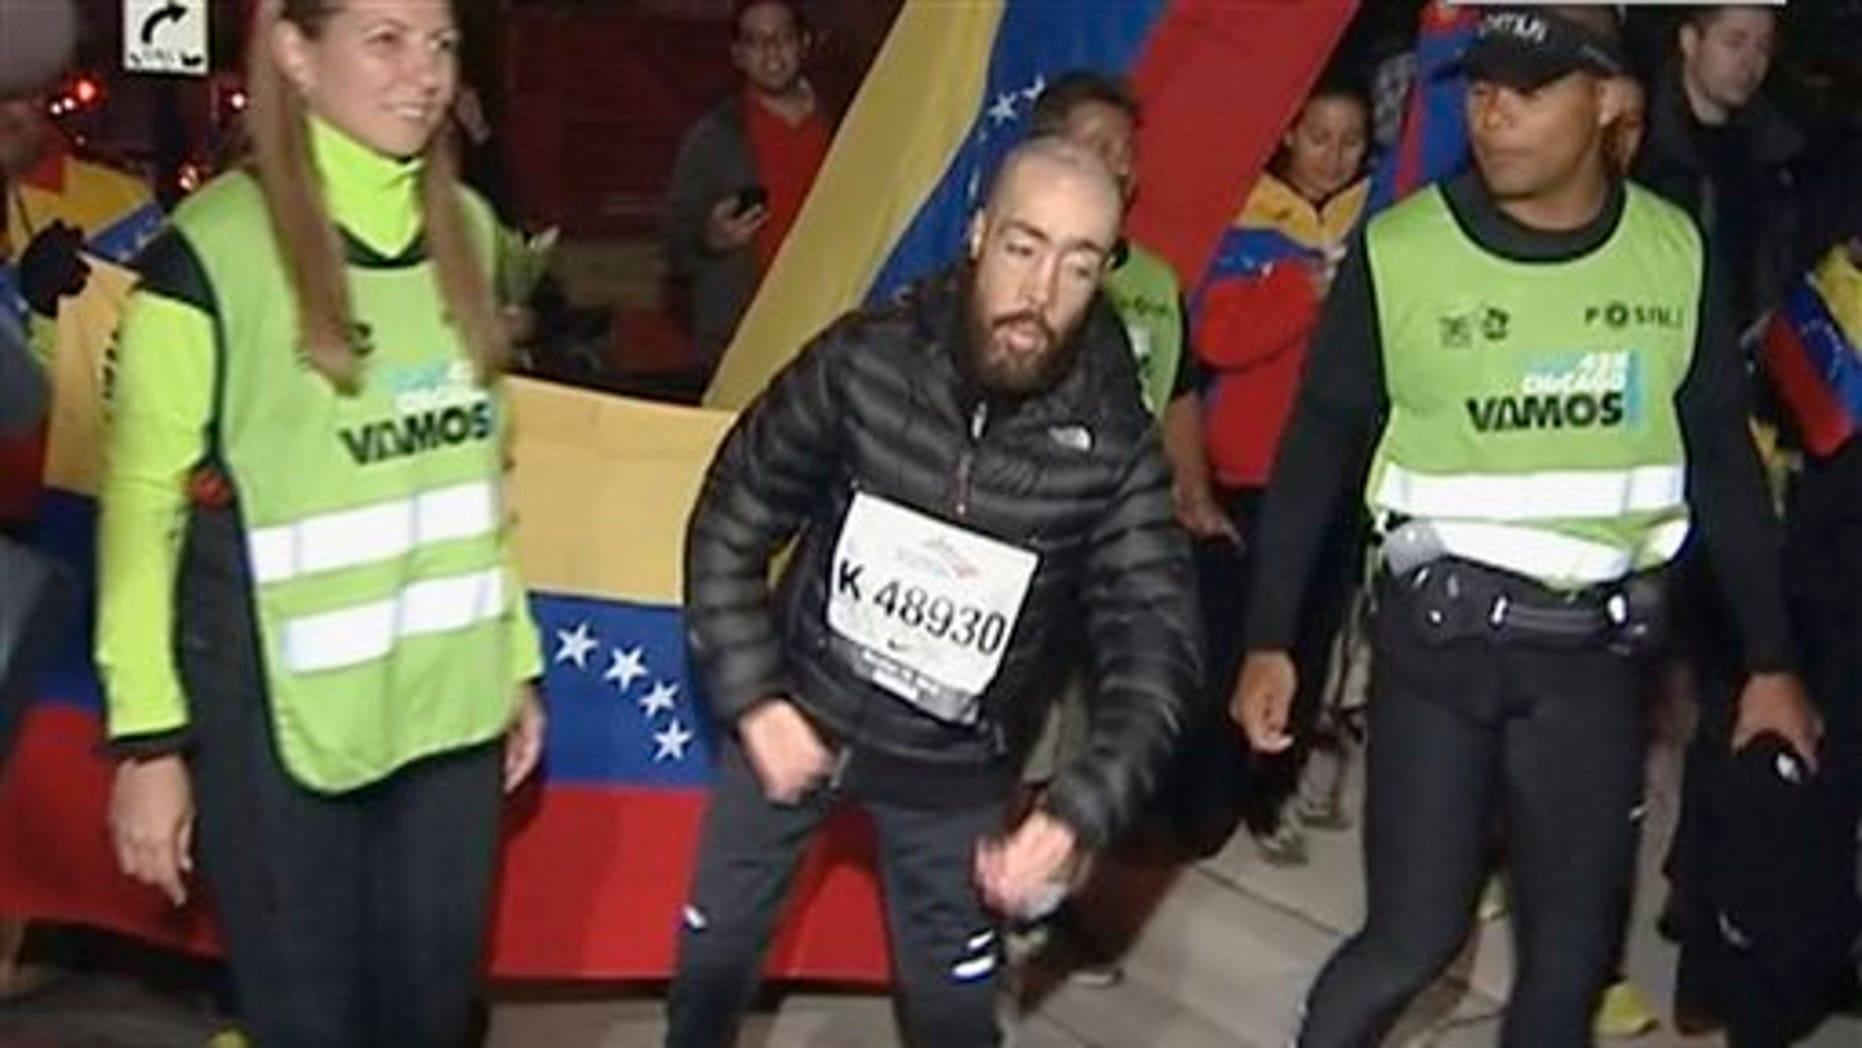 This photo from video provided by Ken Herzlich of Embargo Chicago shows Maickel Melamed, 38, center, of Venezuela, who has muscular dystrophy, nearing the finish line early Monday, Oct. 14, 2013, to be the last runner to finish the Chicago Marathon.